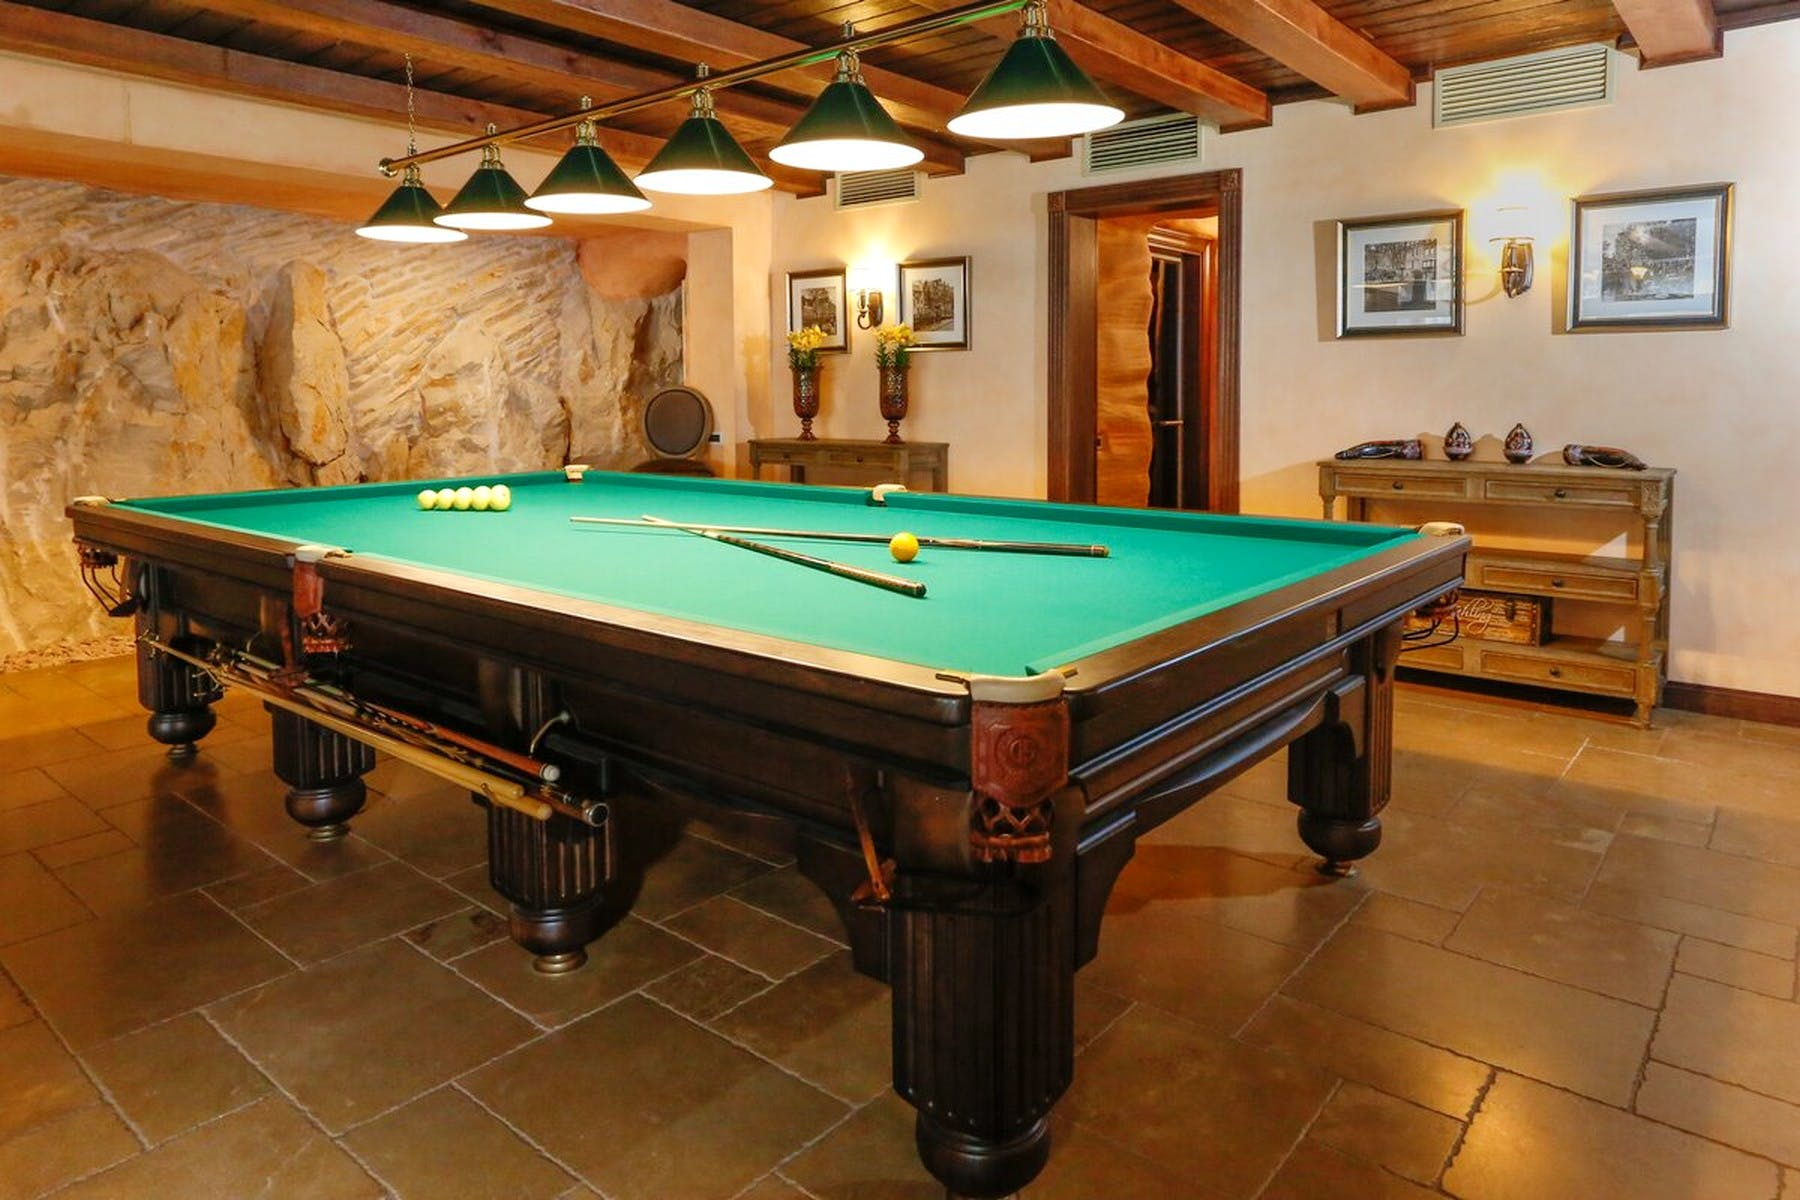 Entertainment room with large billiards table